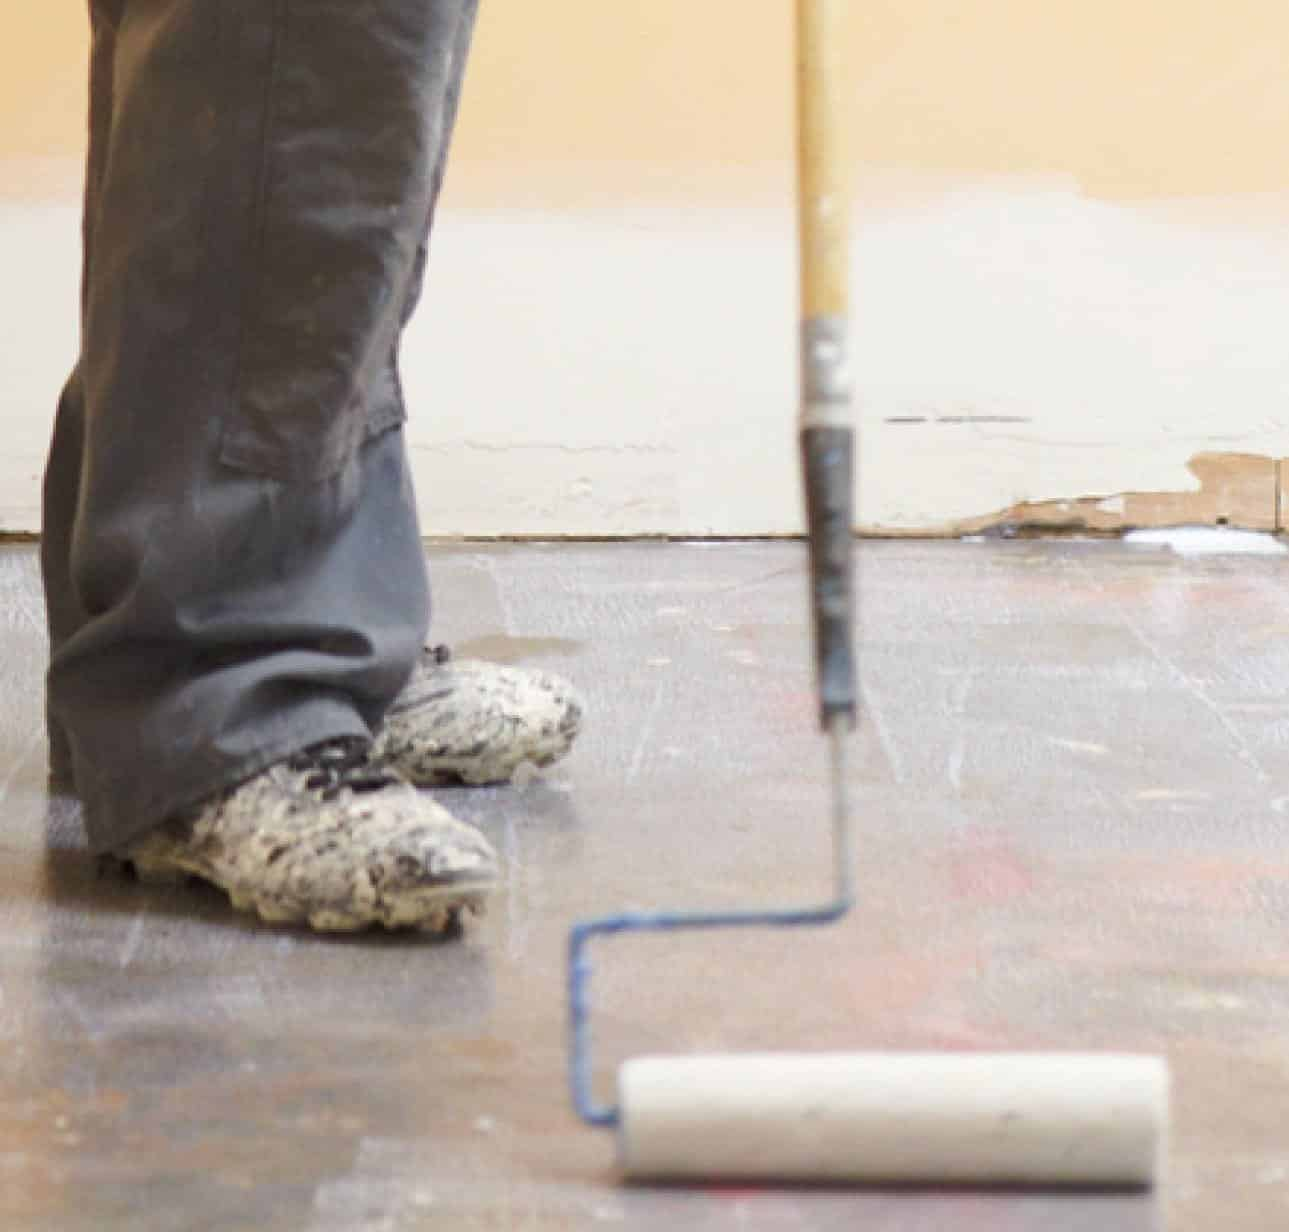 Floor primers and moisture mitigation systems. Primer for self leveling underlayment over concrete, wood, tile and other substrates. Epoxy moisture systems to block moisture vapor emission rate MVER through concrete floors.